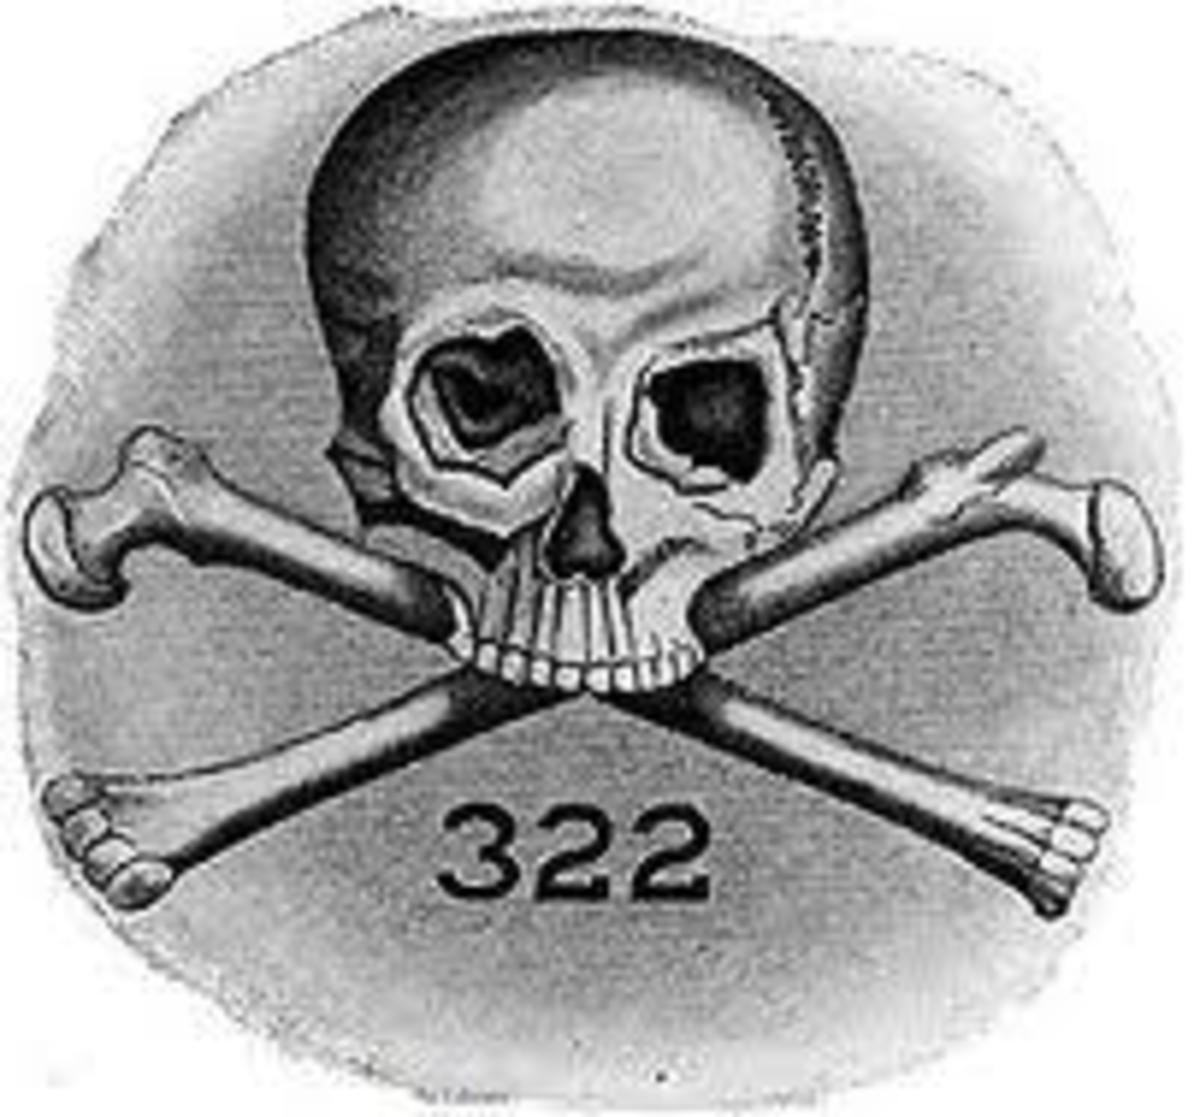 This is the original, and still today, representation of the Skull and Bones Logo of Yale University.